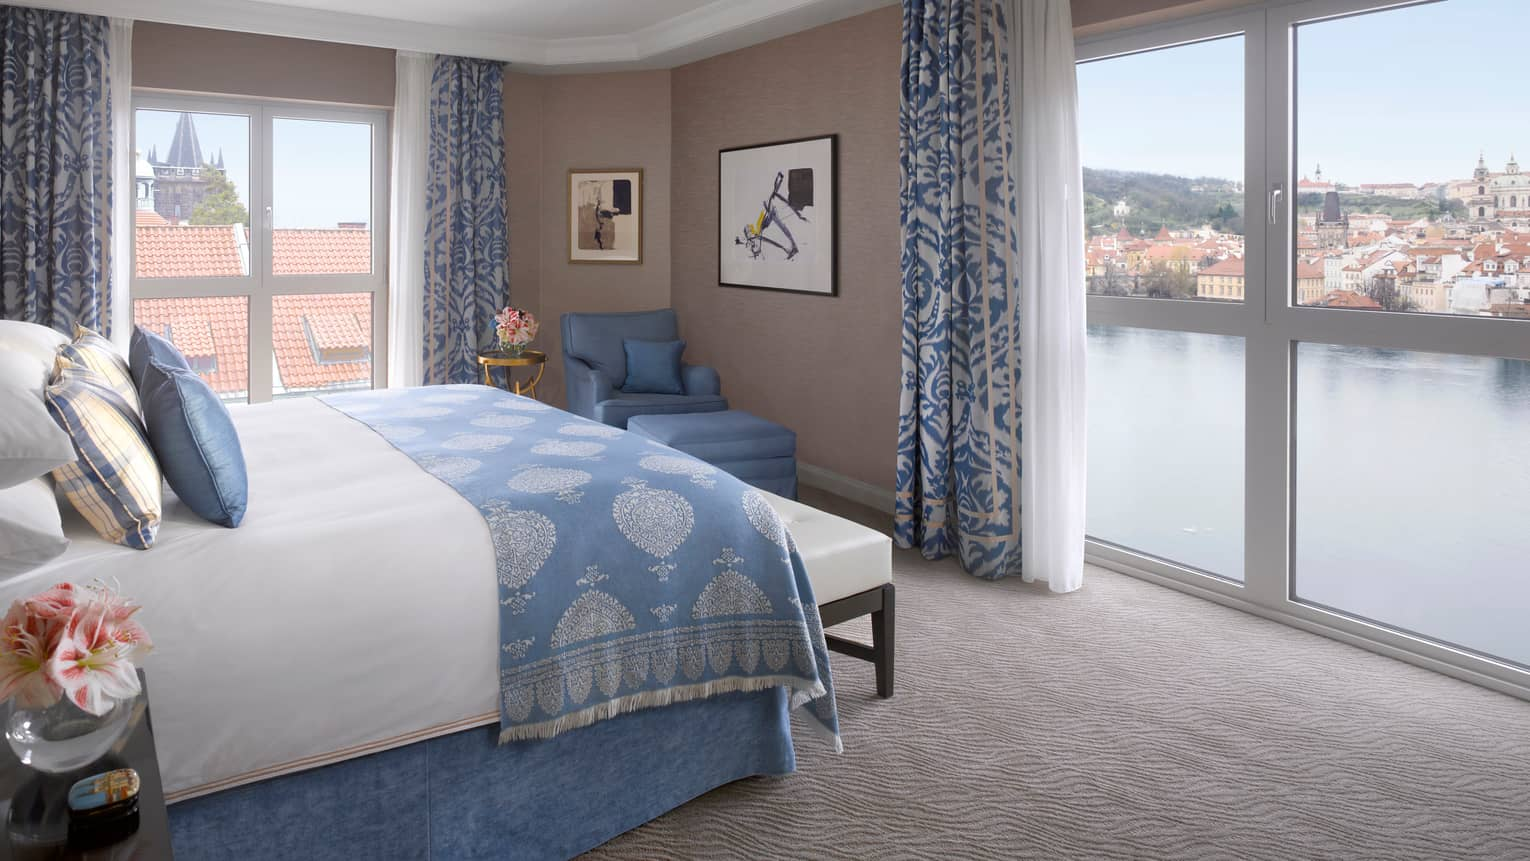 Premier Suite bed with blue blanket, pillow accents, in front of floor-to-ceiling corner windows overlooking Vltava River